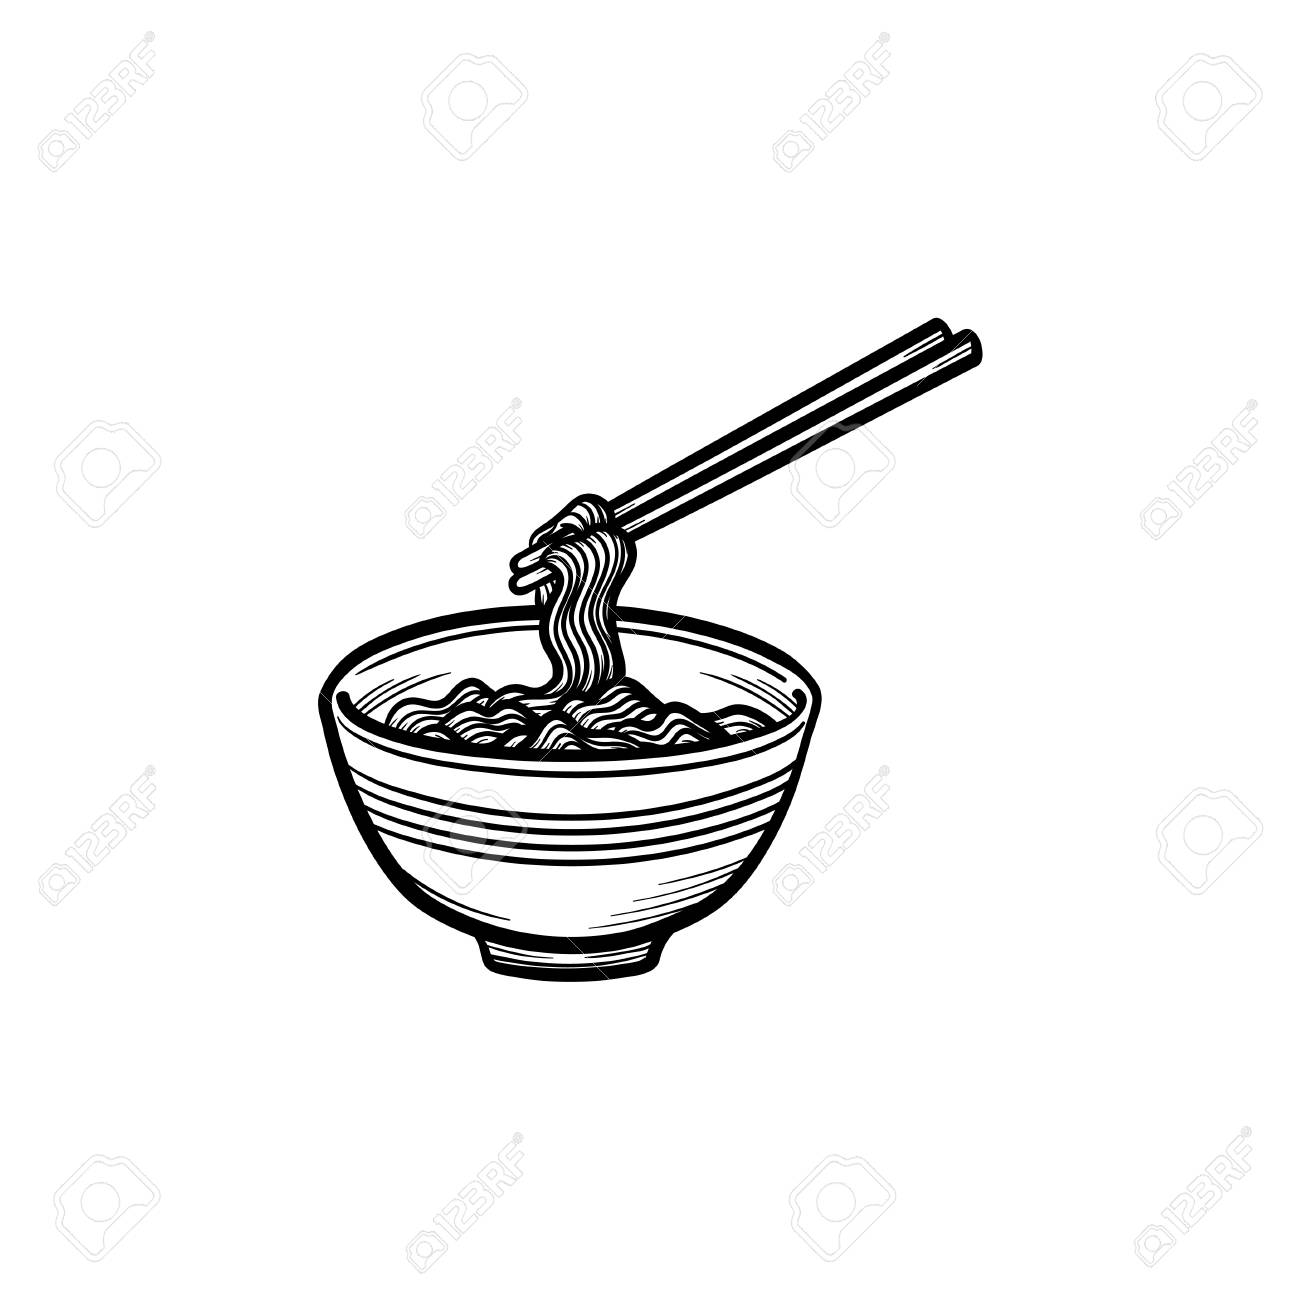 Bowl Of Noodles Hand Drawn Outline Doodle Icon Noodle Soup Vector Royalty Free Cliparts Vectors And Stock Illustration Image 97158915